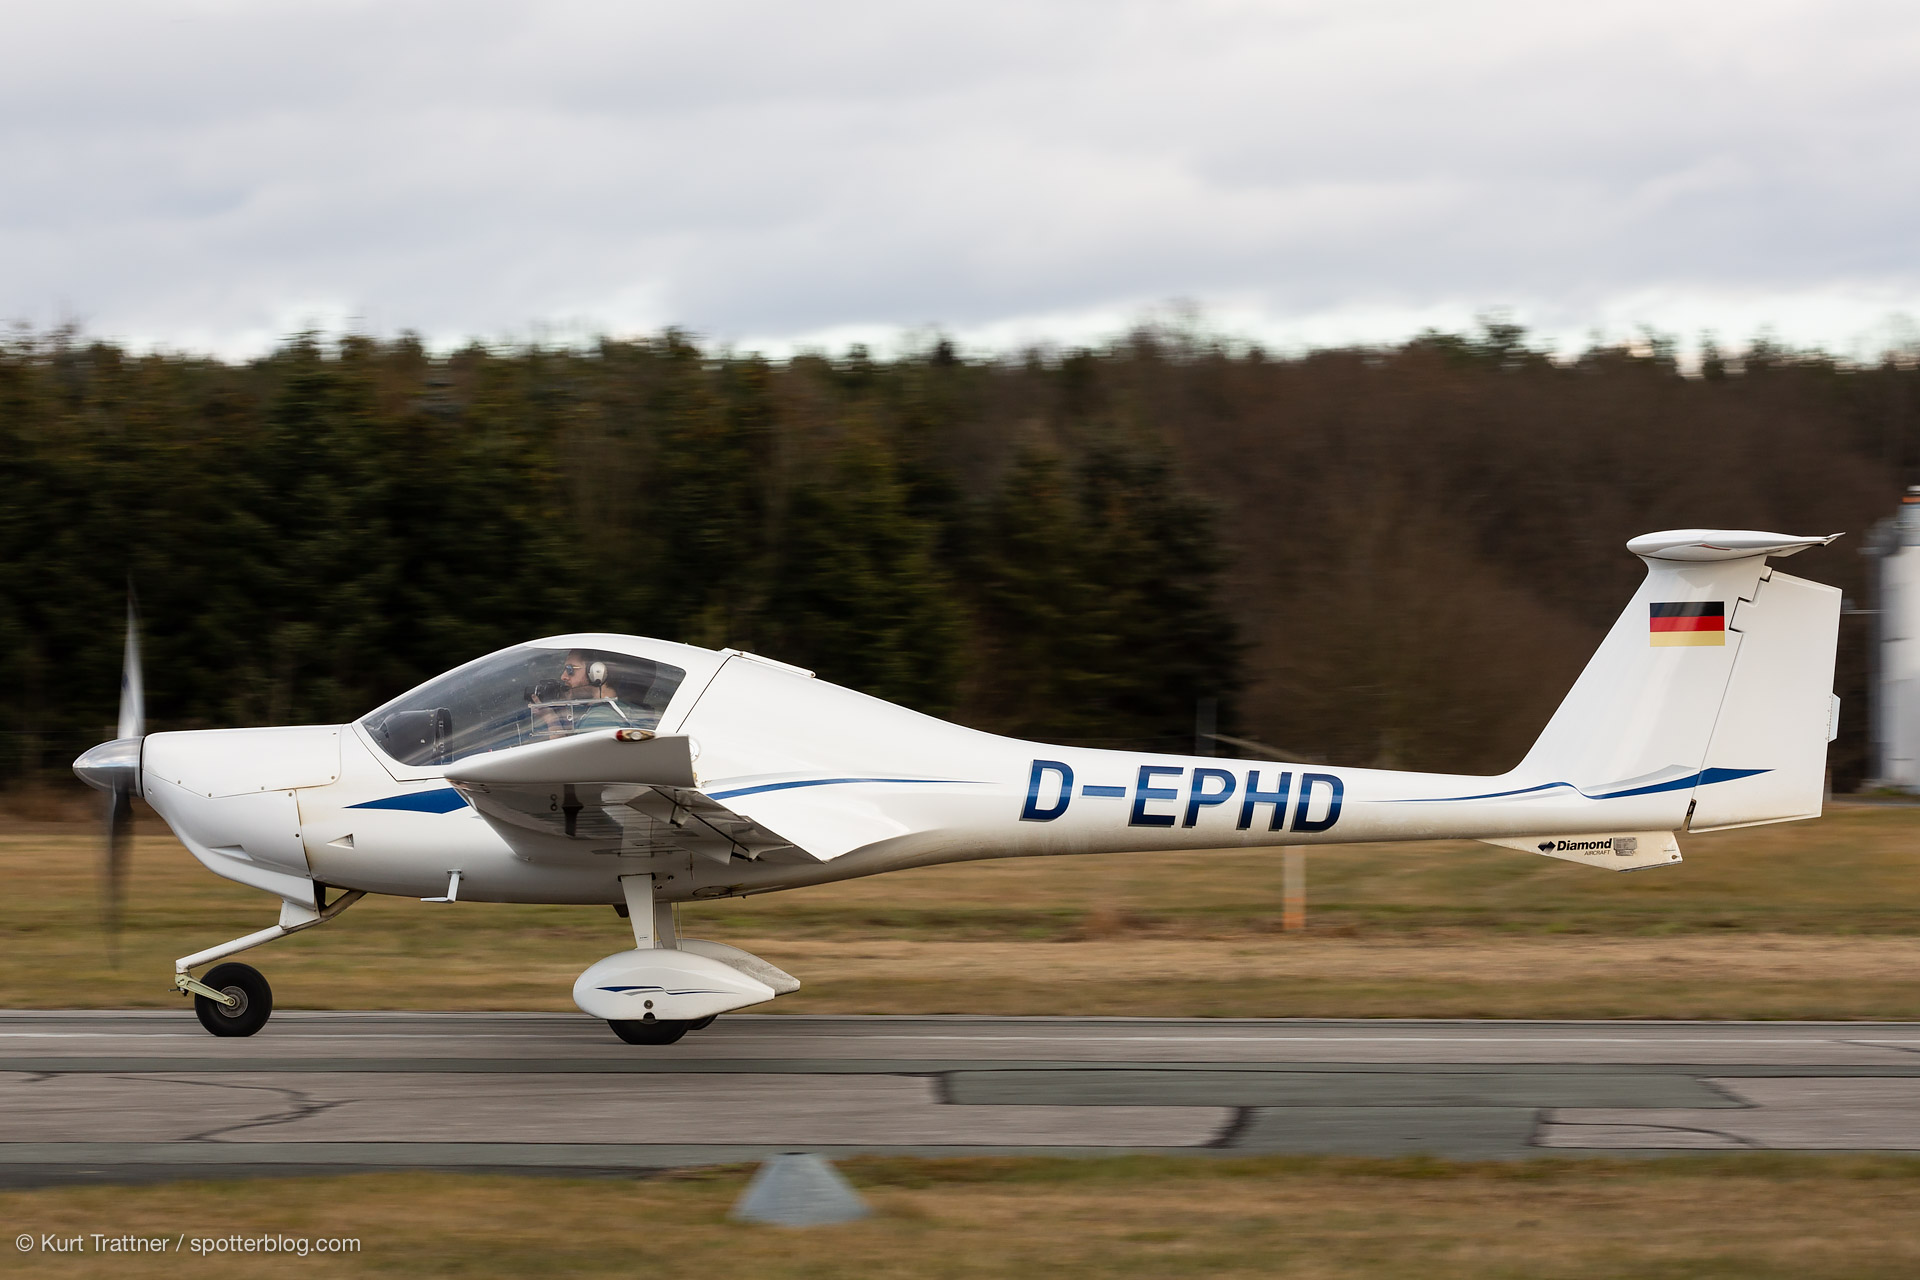 D-EPHD at LOGG on 31.12.2018